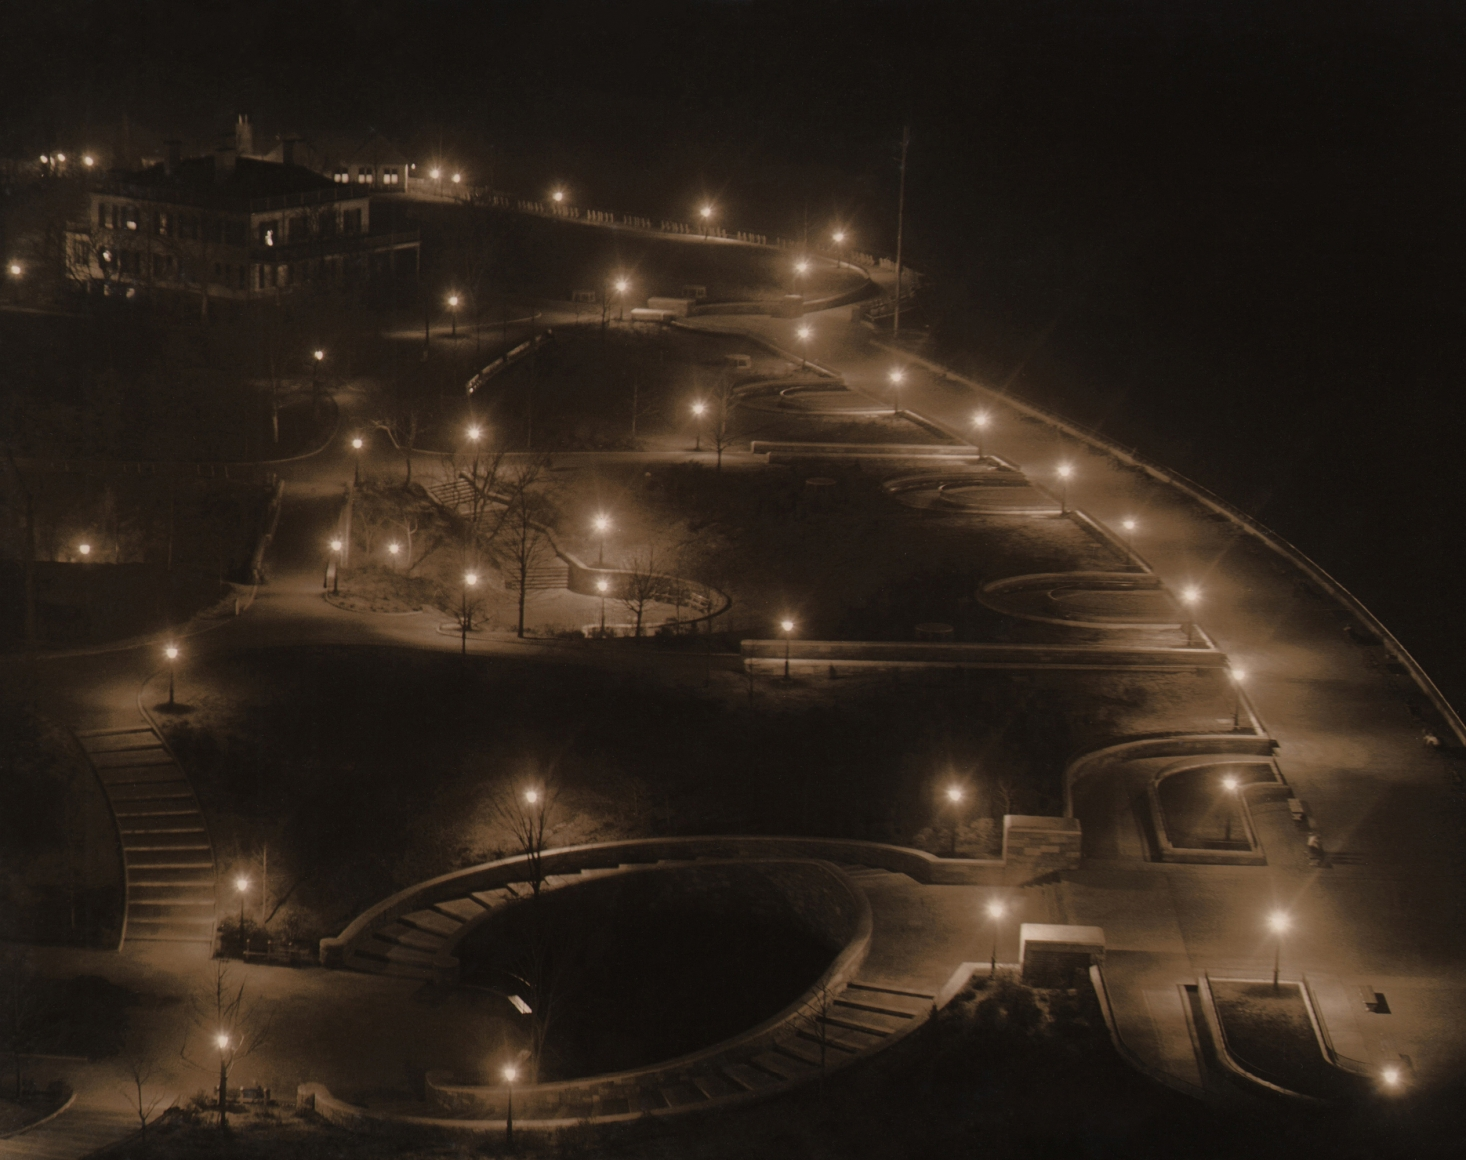 Paul J. Woolf, Carl Schurz Park, c. 1935. Night time view of a park with street lights illuminating various walking paths and stairways.